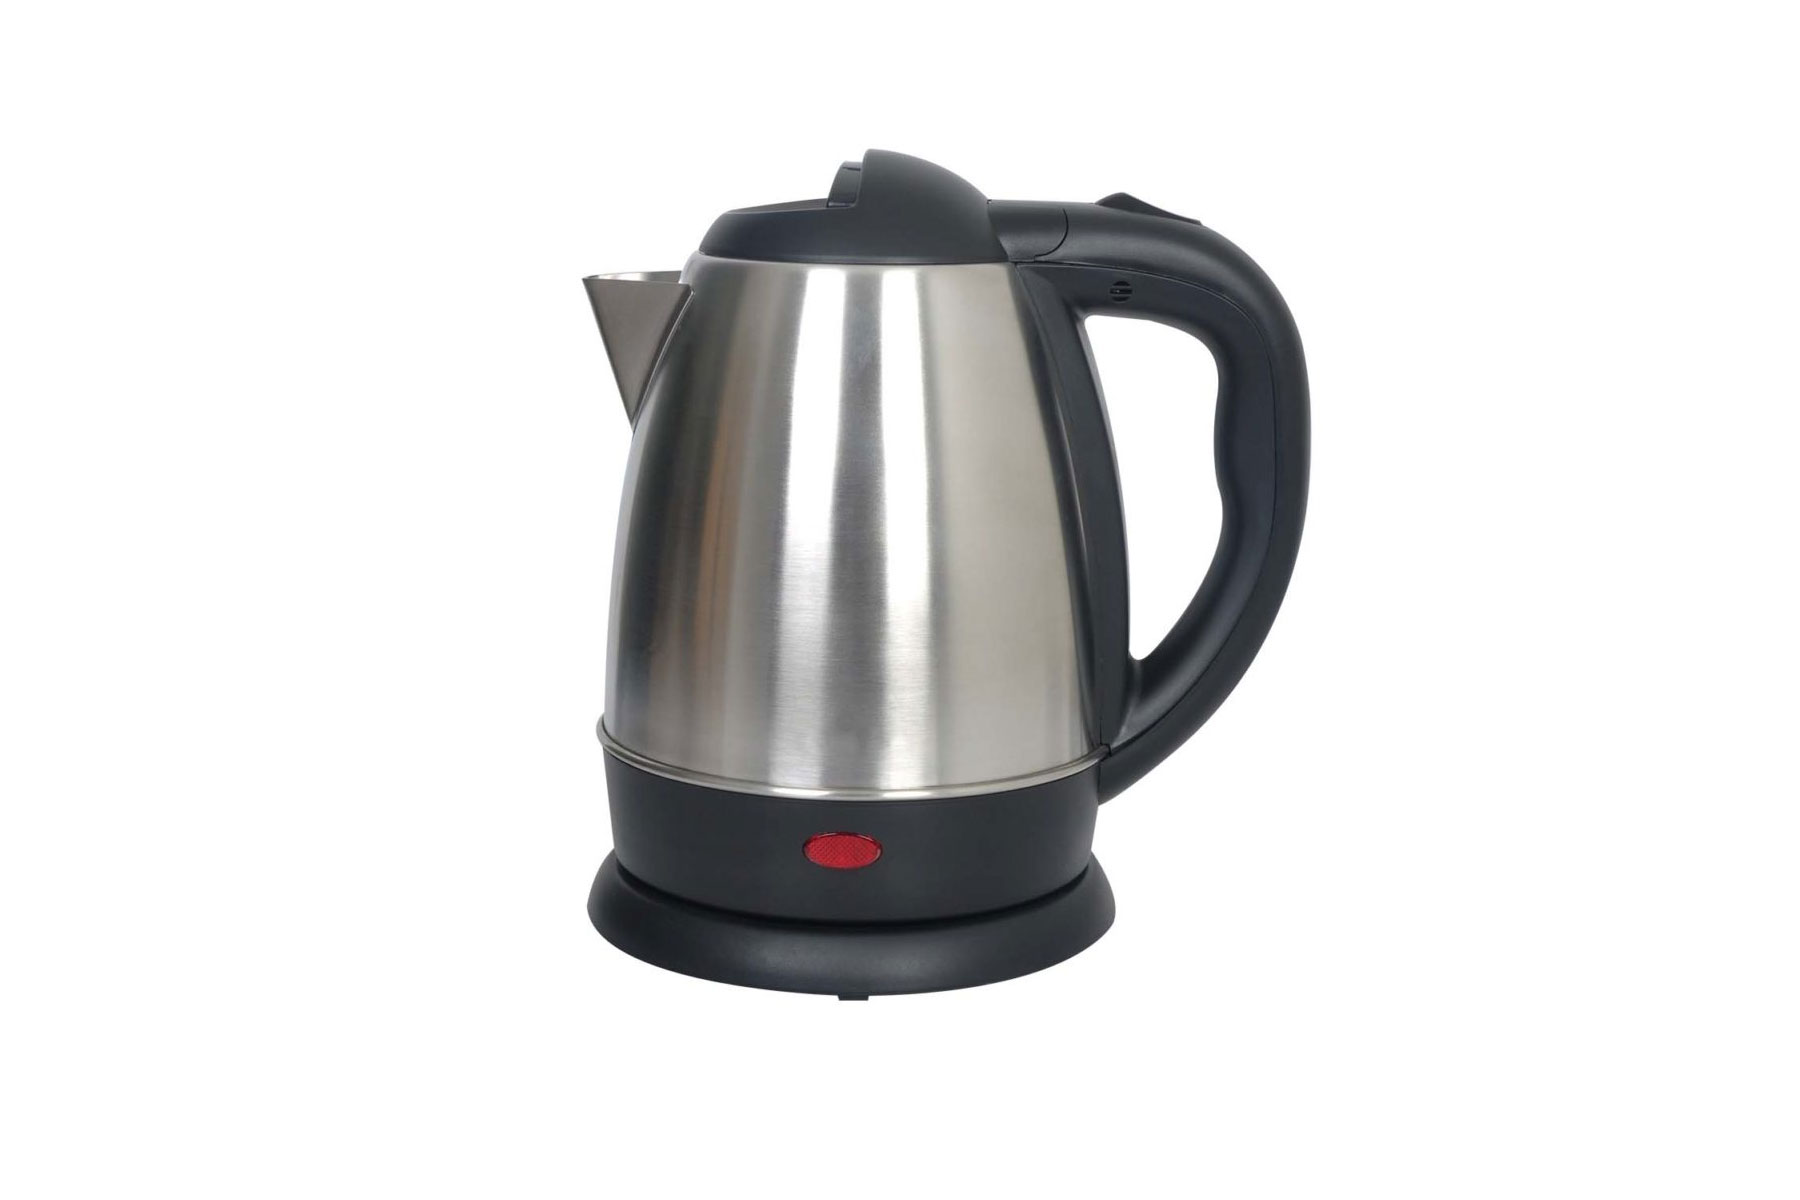 Electric Kettle,Stainless Steel,Hotel Supplies Ireland,Hospitality,1,2 litre,